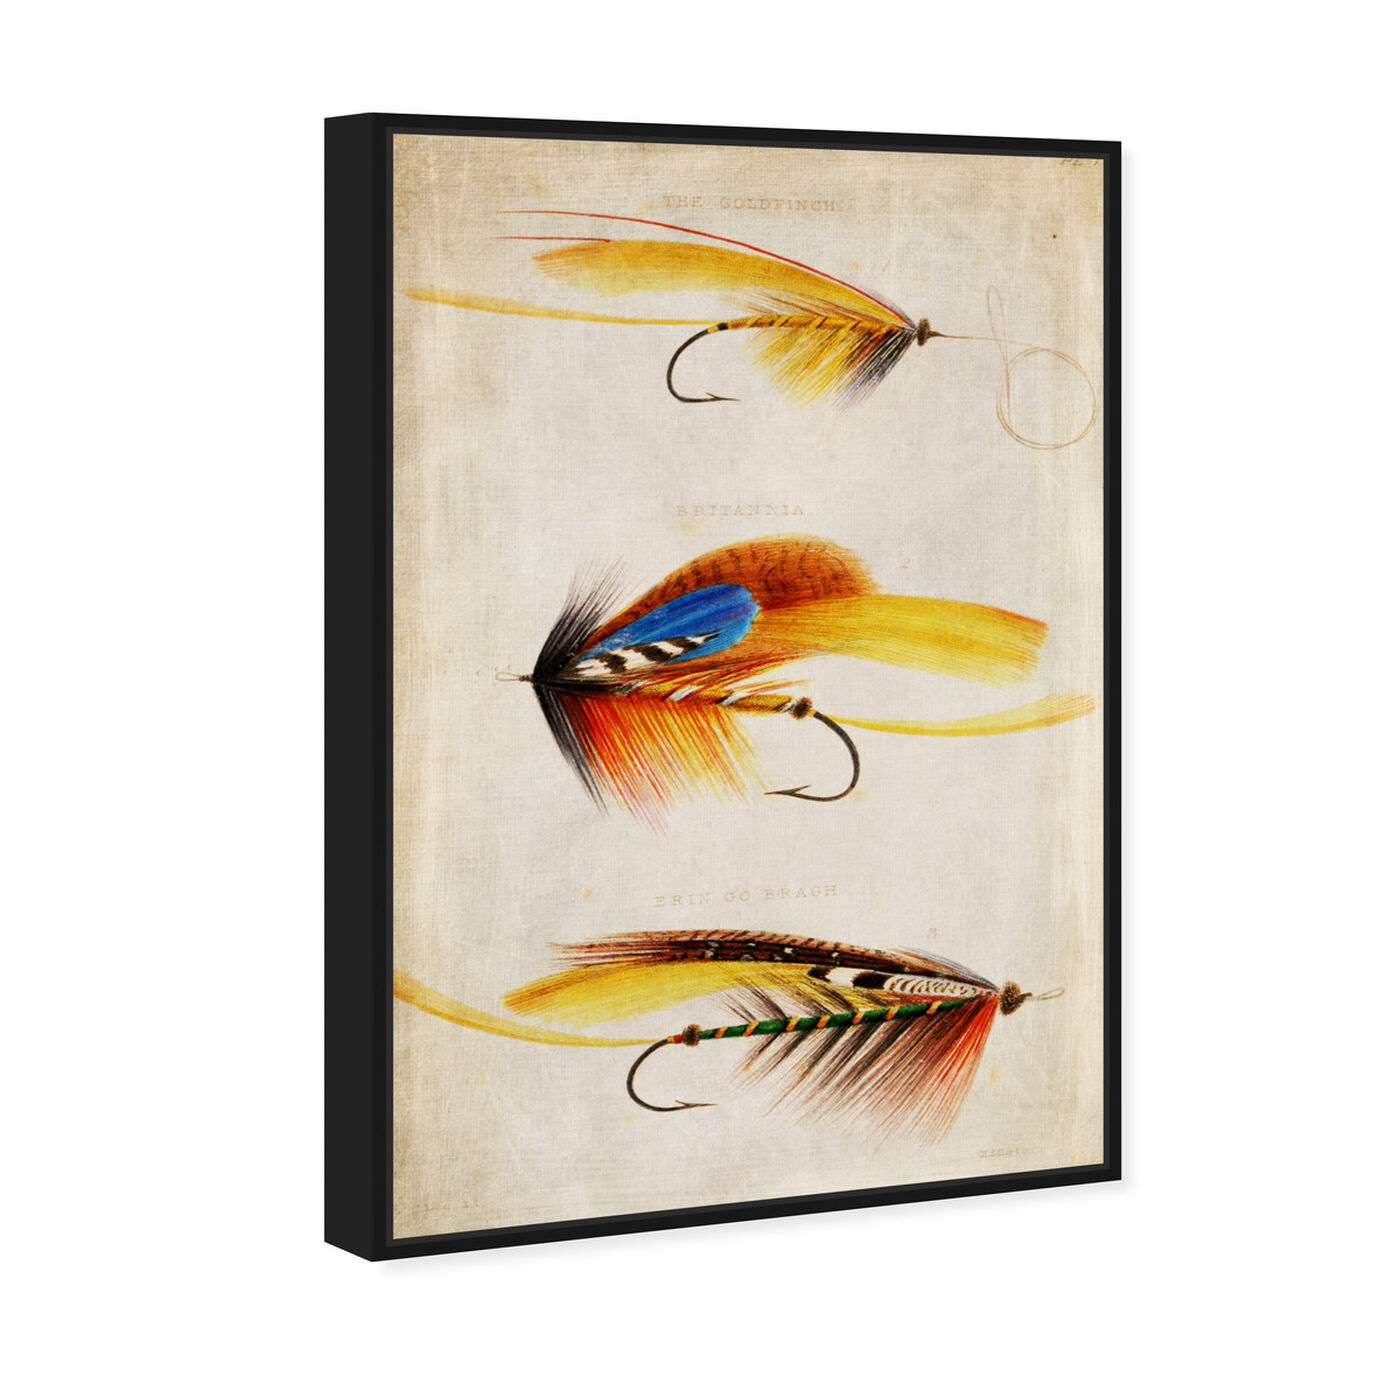 Angled view of Goldfinch featuring entertainment and hobbies and fishing art.